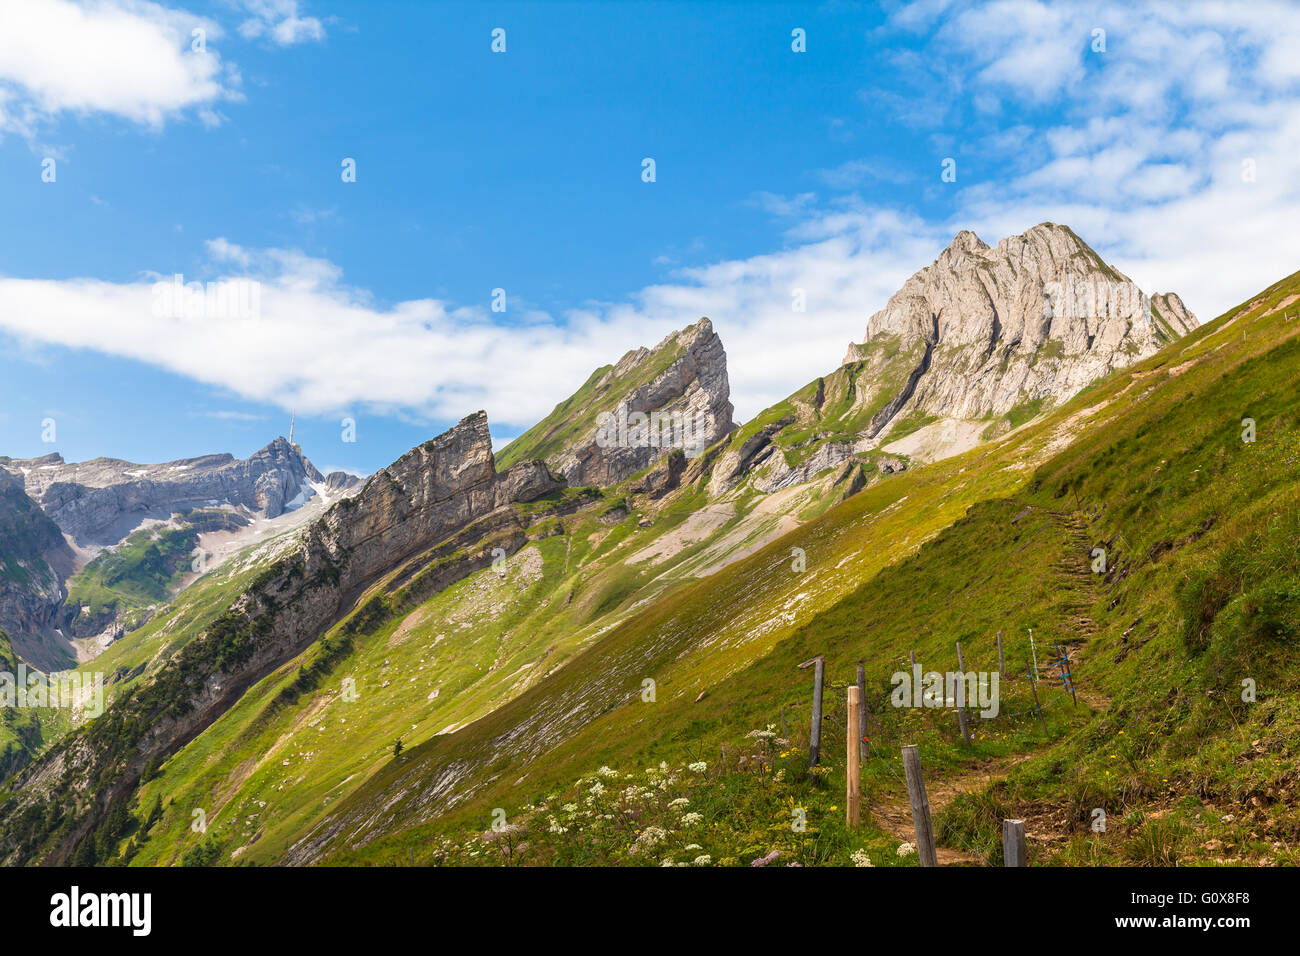 Stunning View of Santis and Alpstein massif in east Switzerland, Canton of Appenzell - Stock Image